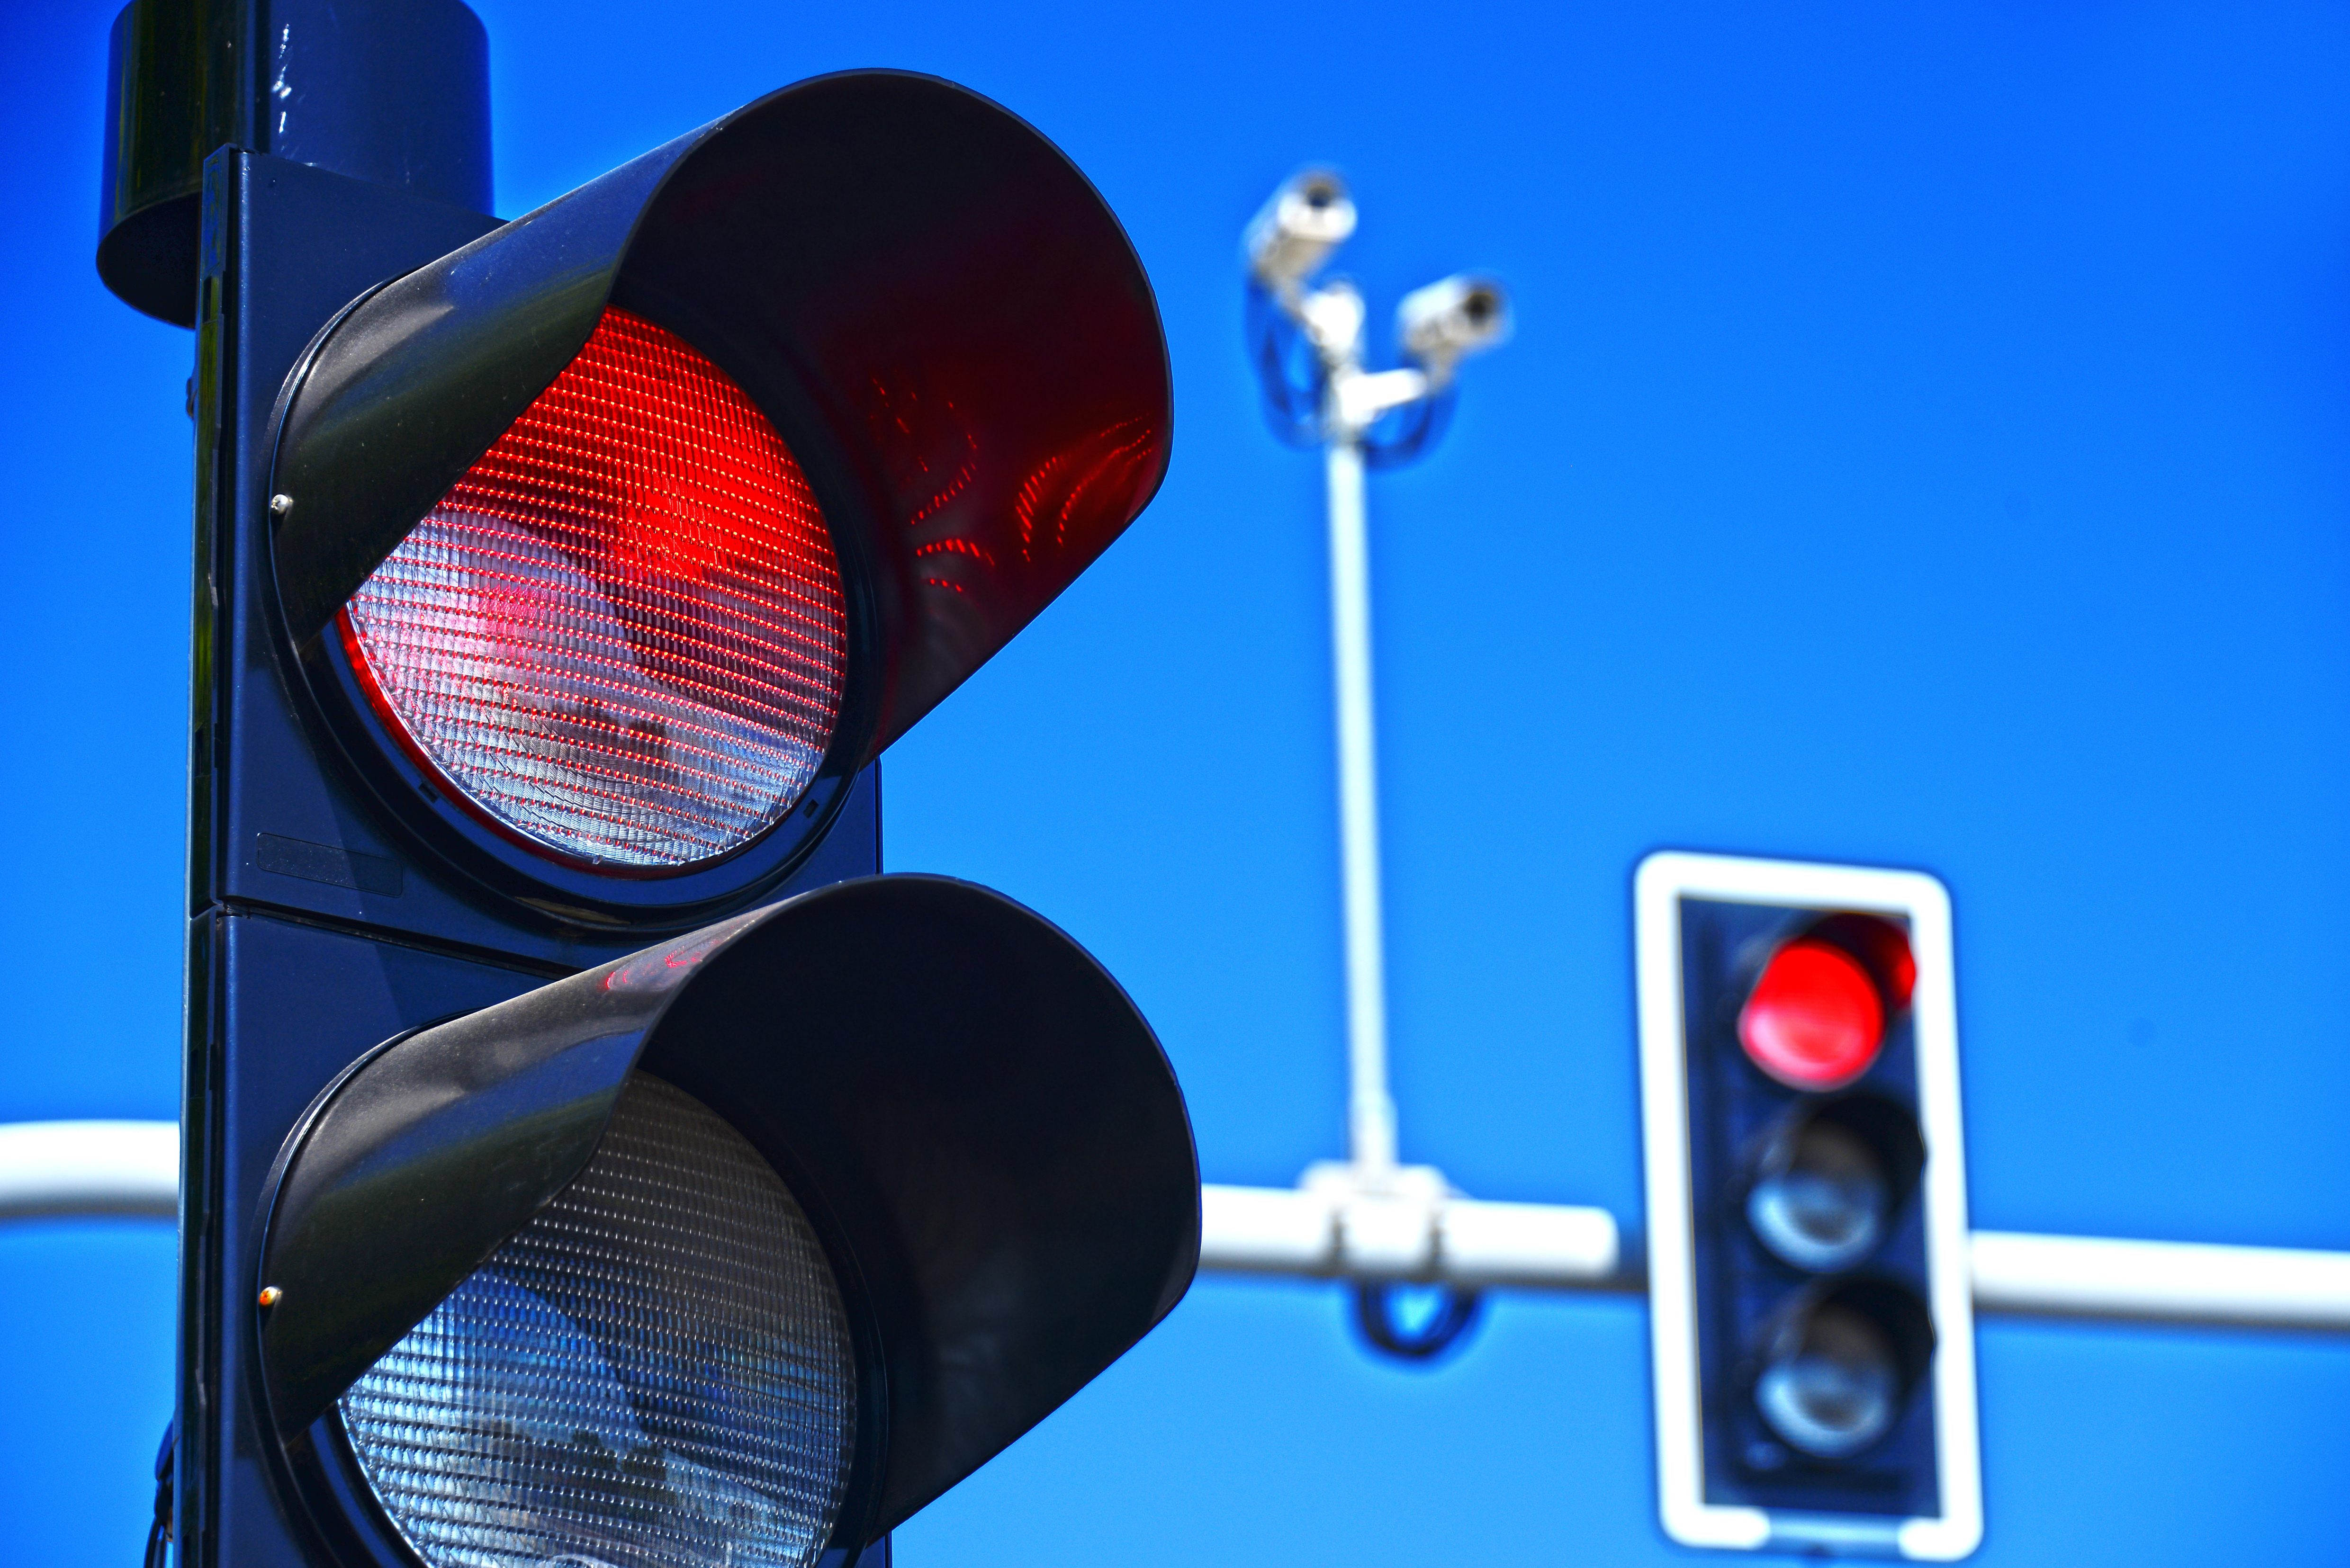 Good Red Light Turn Tickets GONE